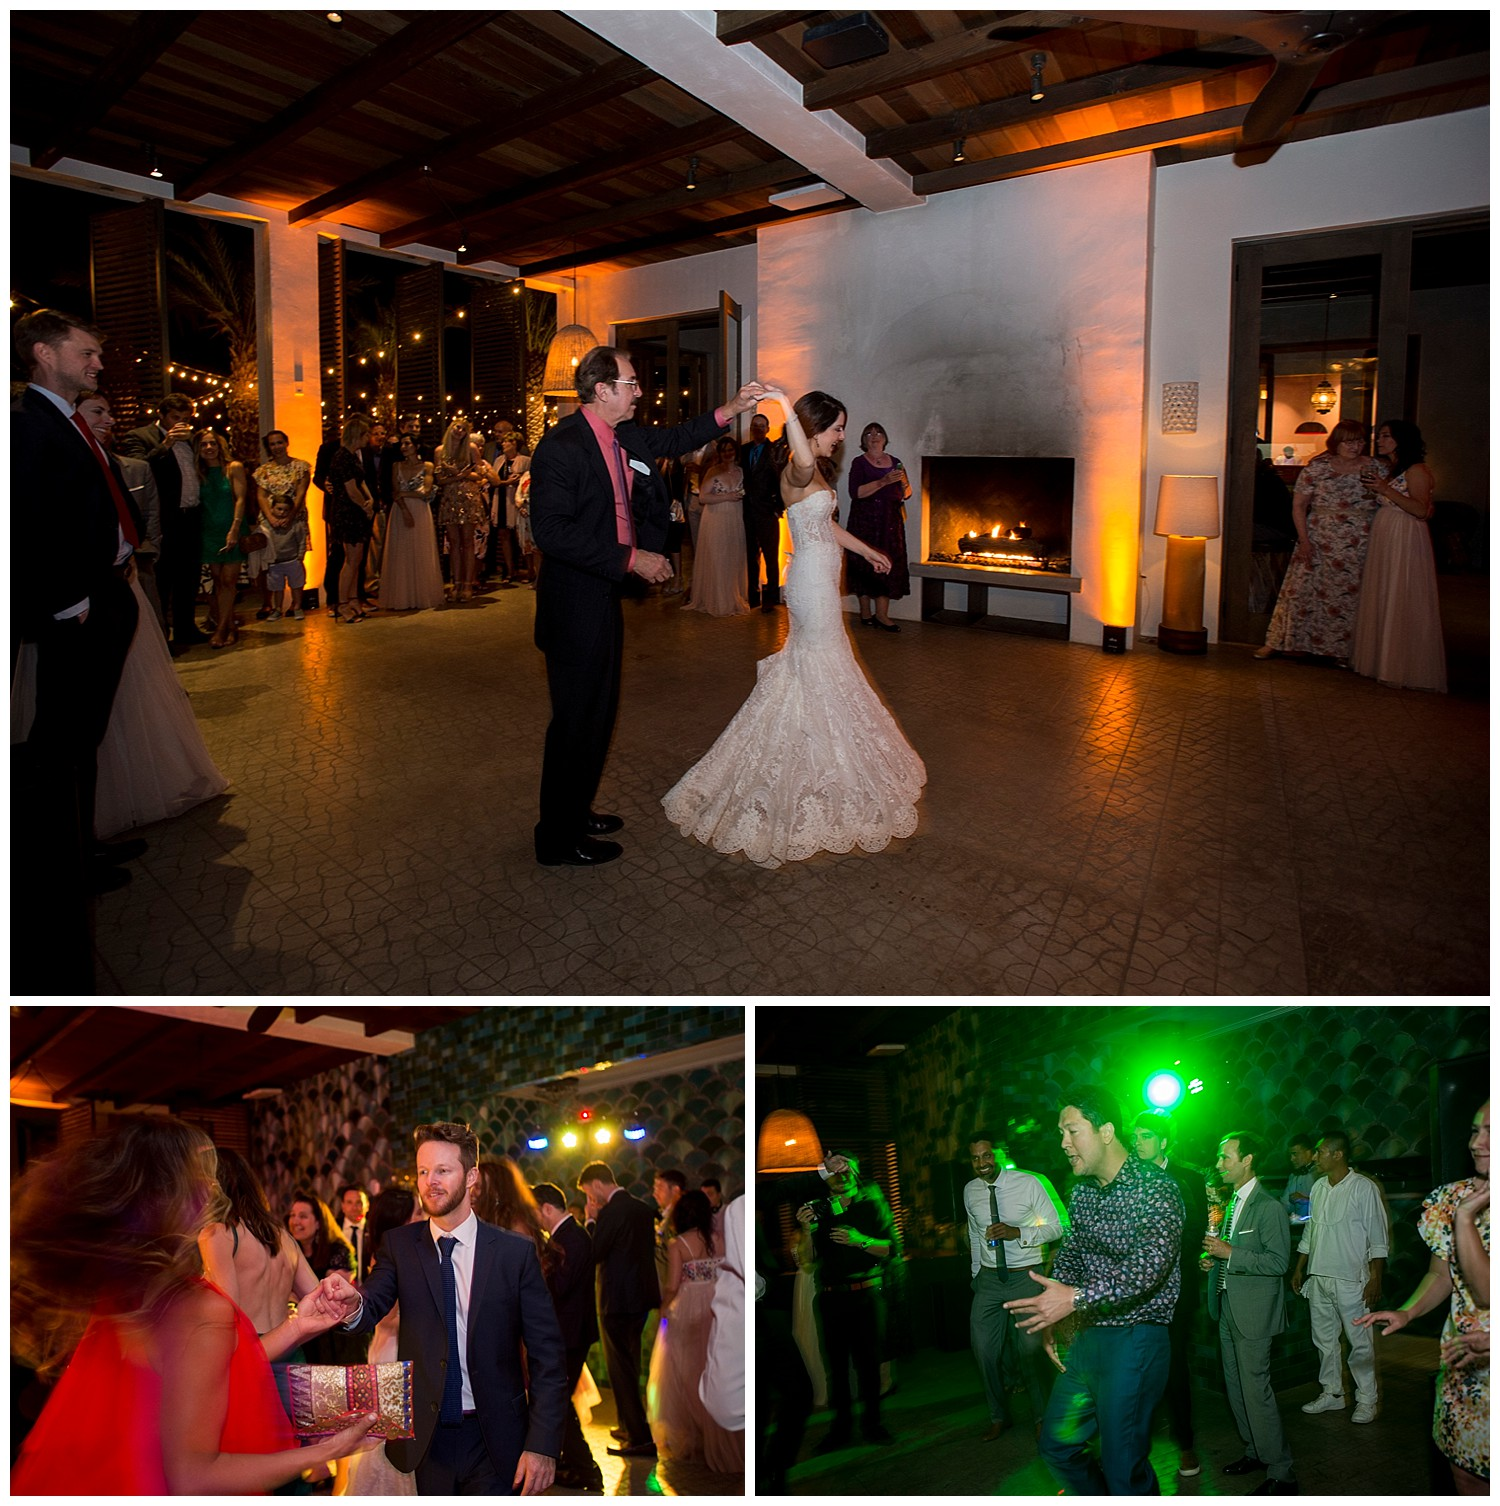 bride and groom take their first dance at wedding in Todos Santos